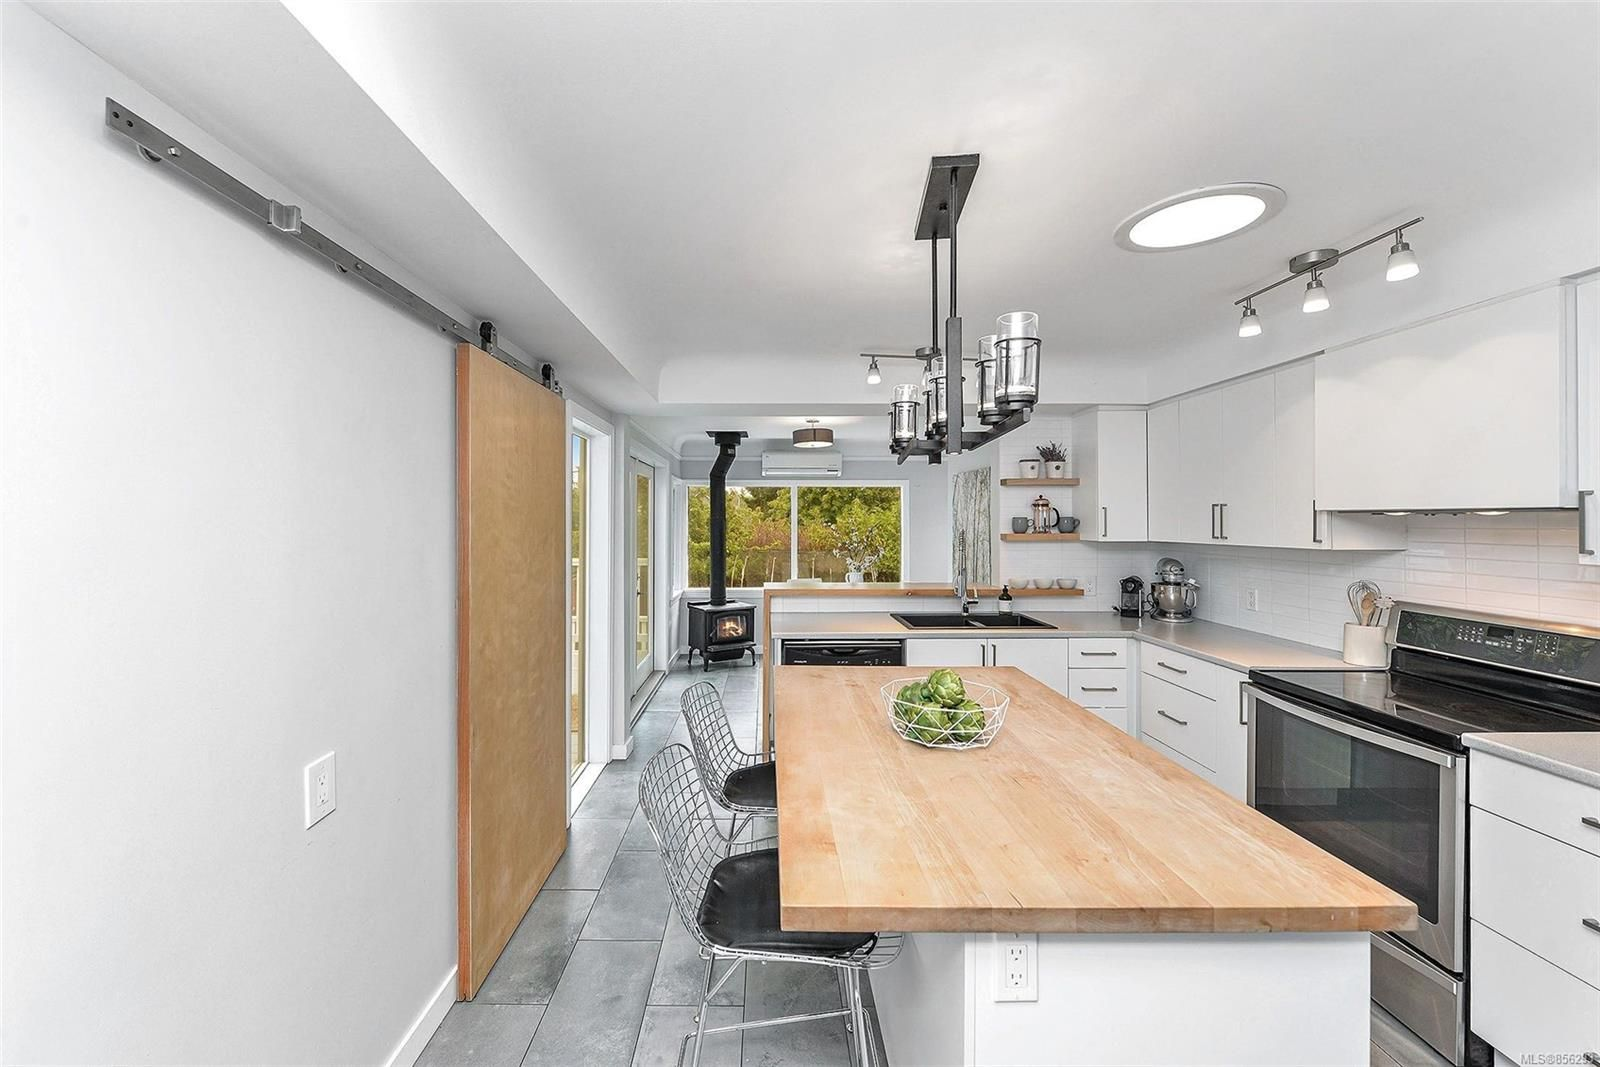 Photo 13: Photos: 1753 Armstrong Ave in : OB North Oak Bay House for sale (Oak Bay)  : MLS®# 856293